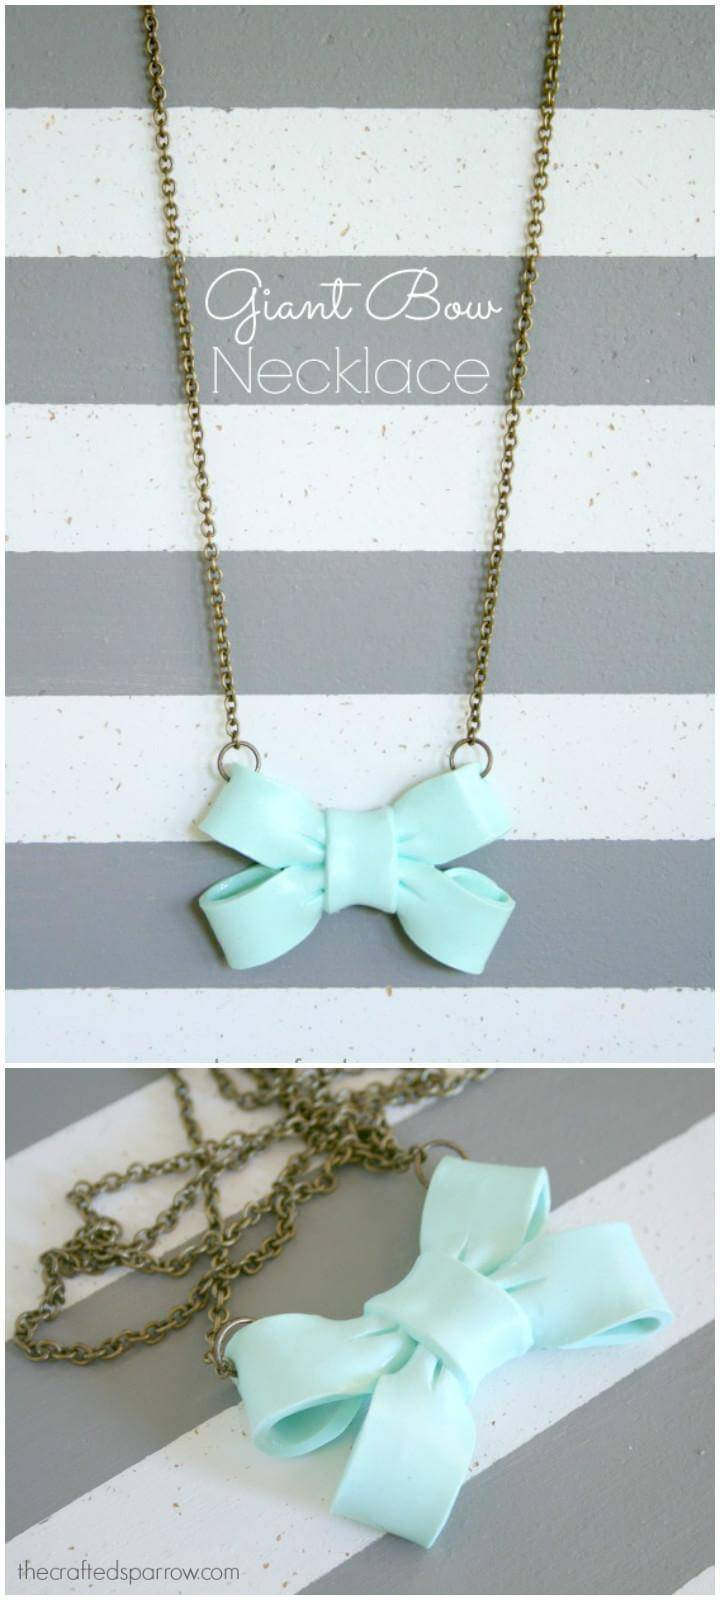 DIY Gorgeous Giant Bow Necklace